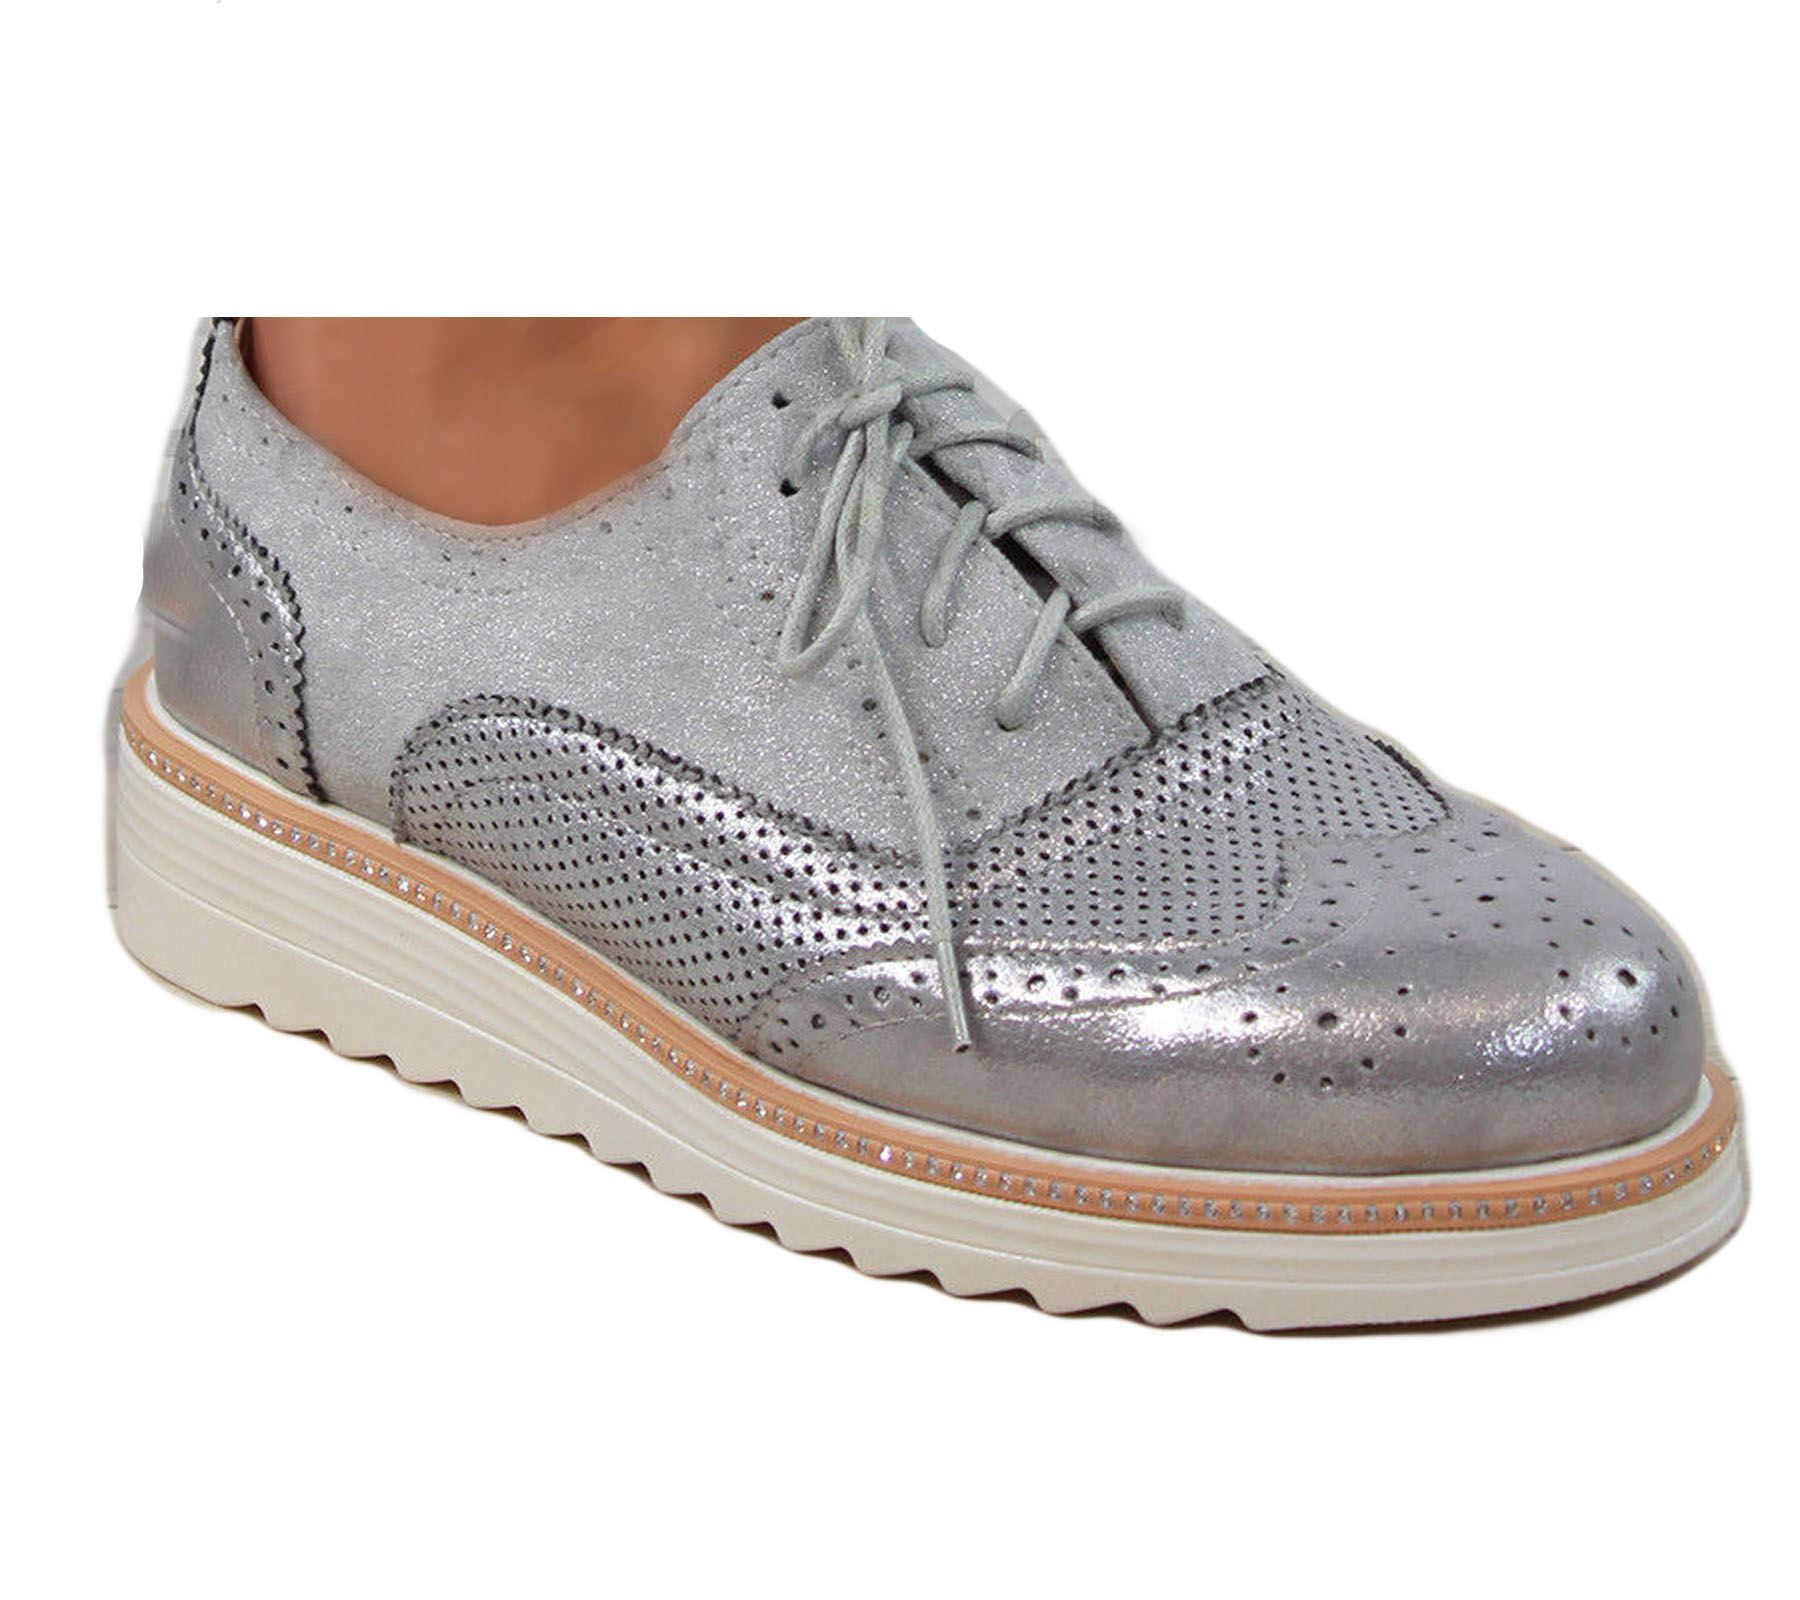 Ladies-Brogue-Lace-Up-Shoes-Womens-Oxford-Smart-Office-Loafers-Shoes miniatura 22